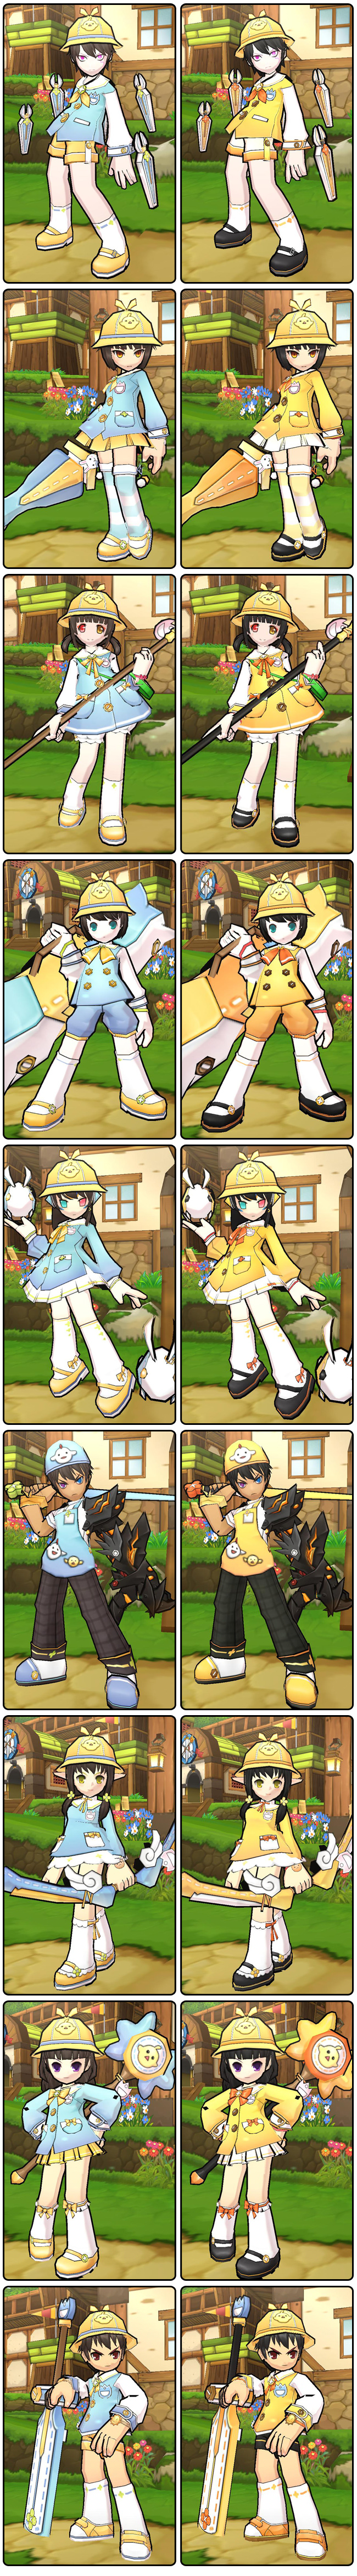 Elrios Kindergarten has released the new uniforms. Youngsters, get yours in the Elsword Item Mall!